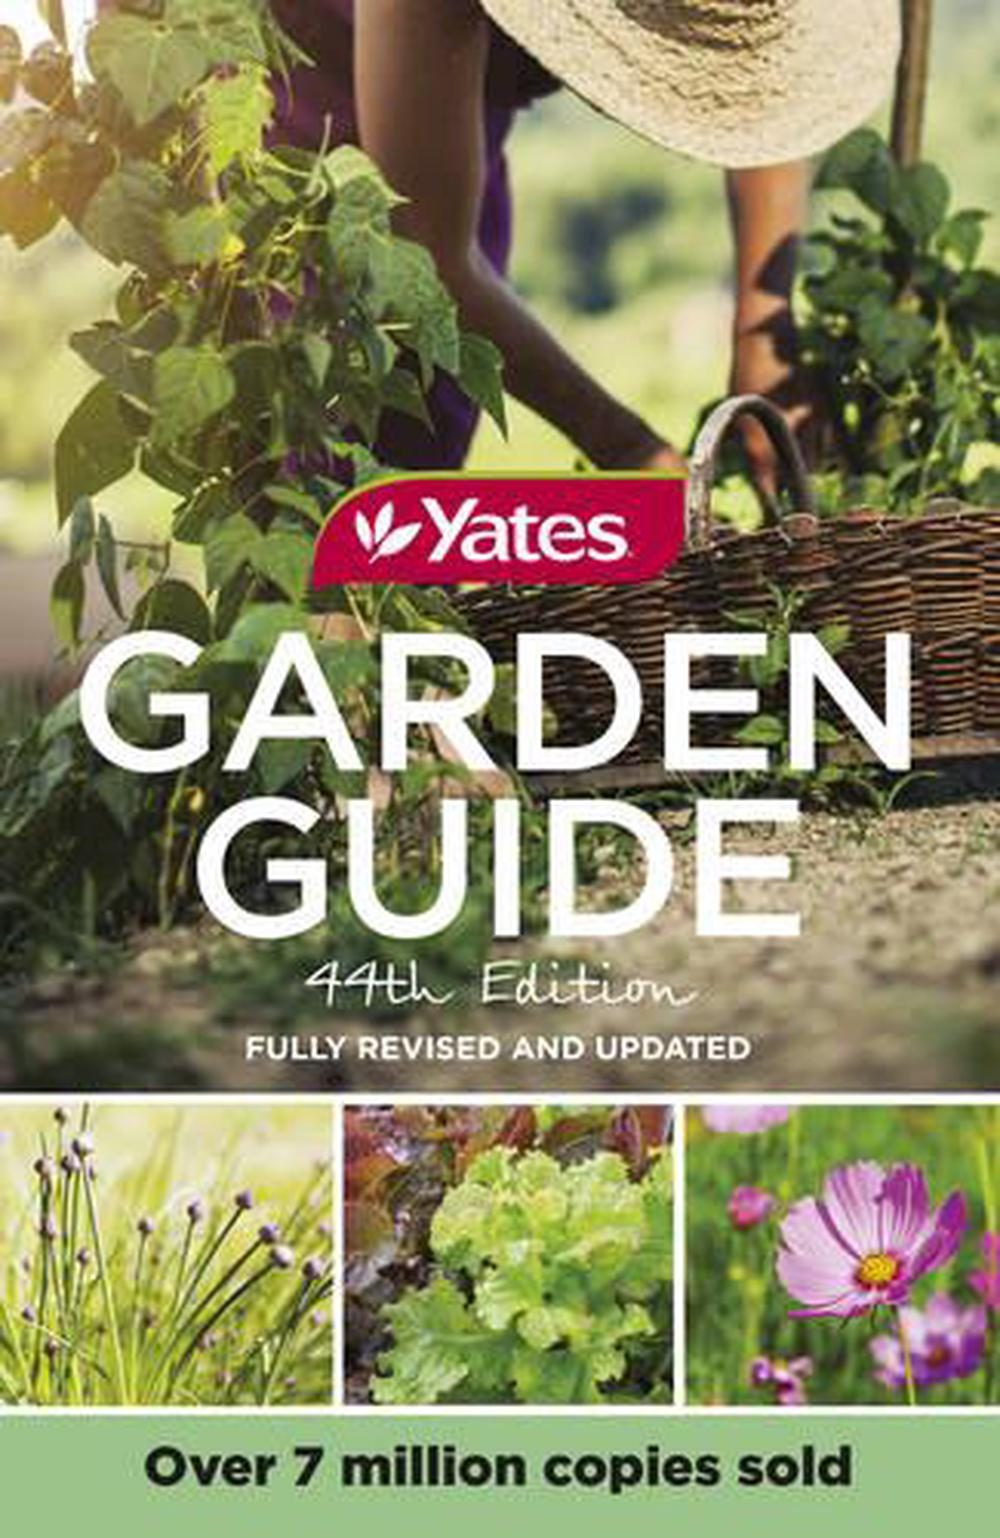 Yates Garden Guide 2015 by Yates, Paperback, 9780732289874 ...